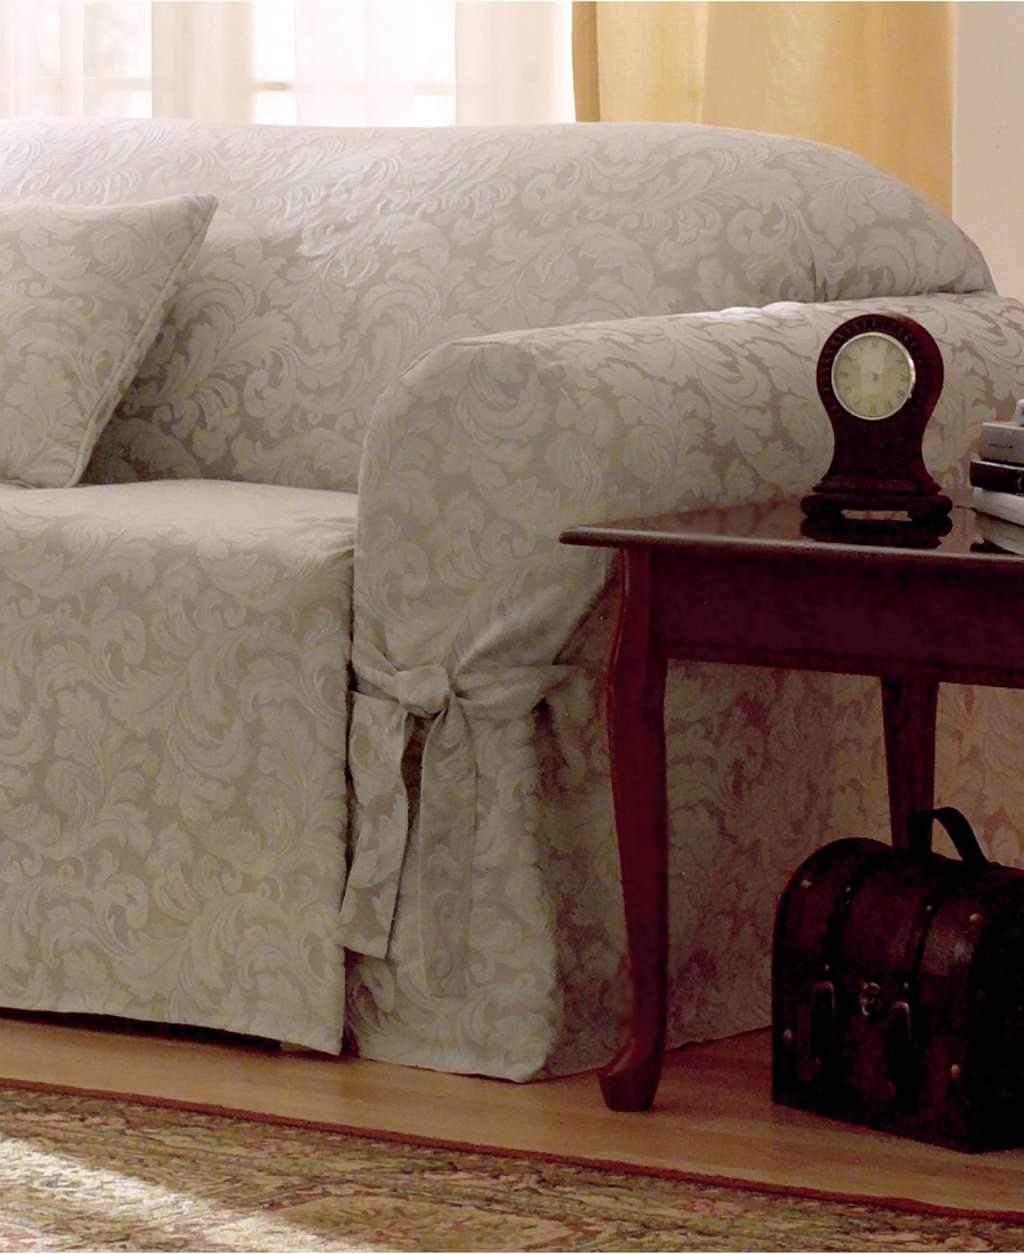 37 Reclining Sofa Slip Cover Put Slipcover How A Reclining Sofa To Function Properly